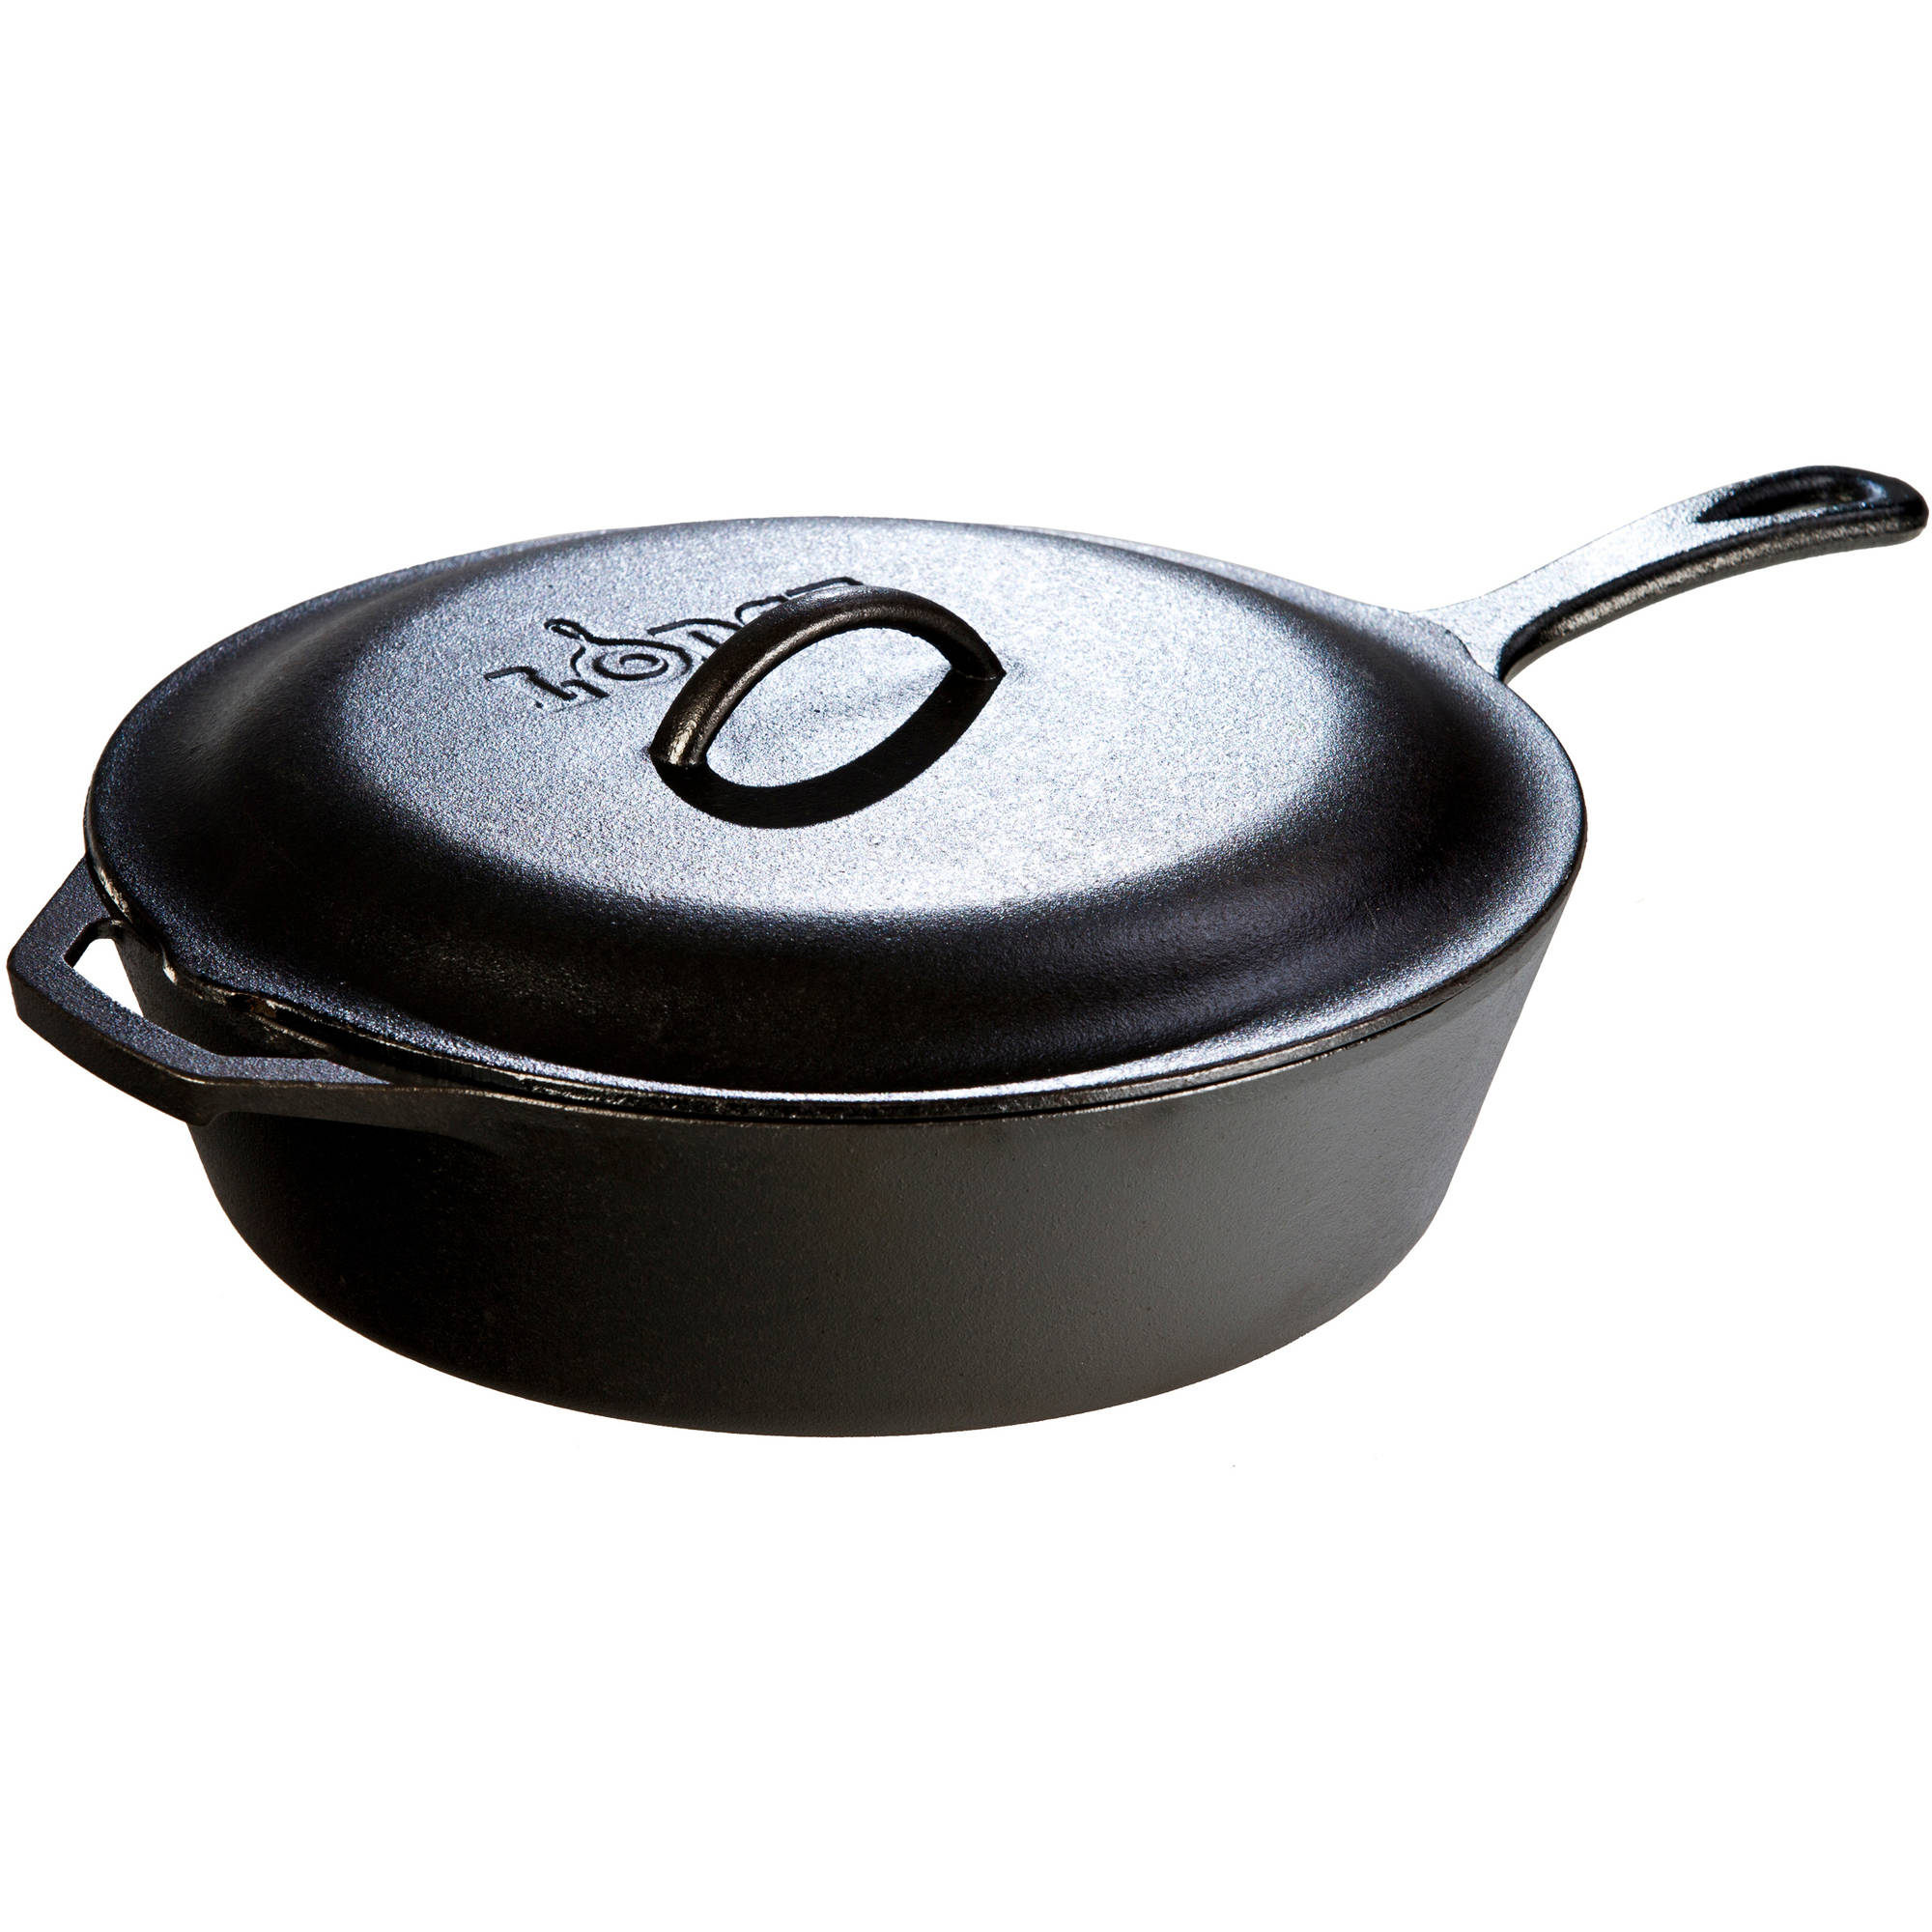 Lodge color enamel and cast iron quot square grill pan